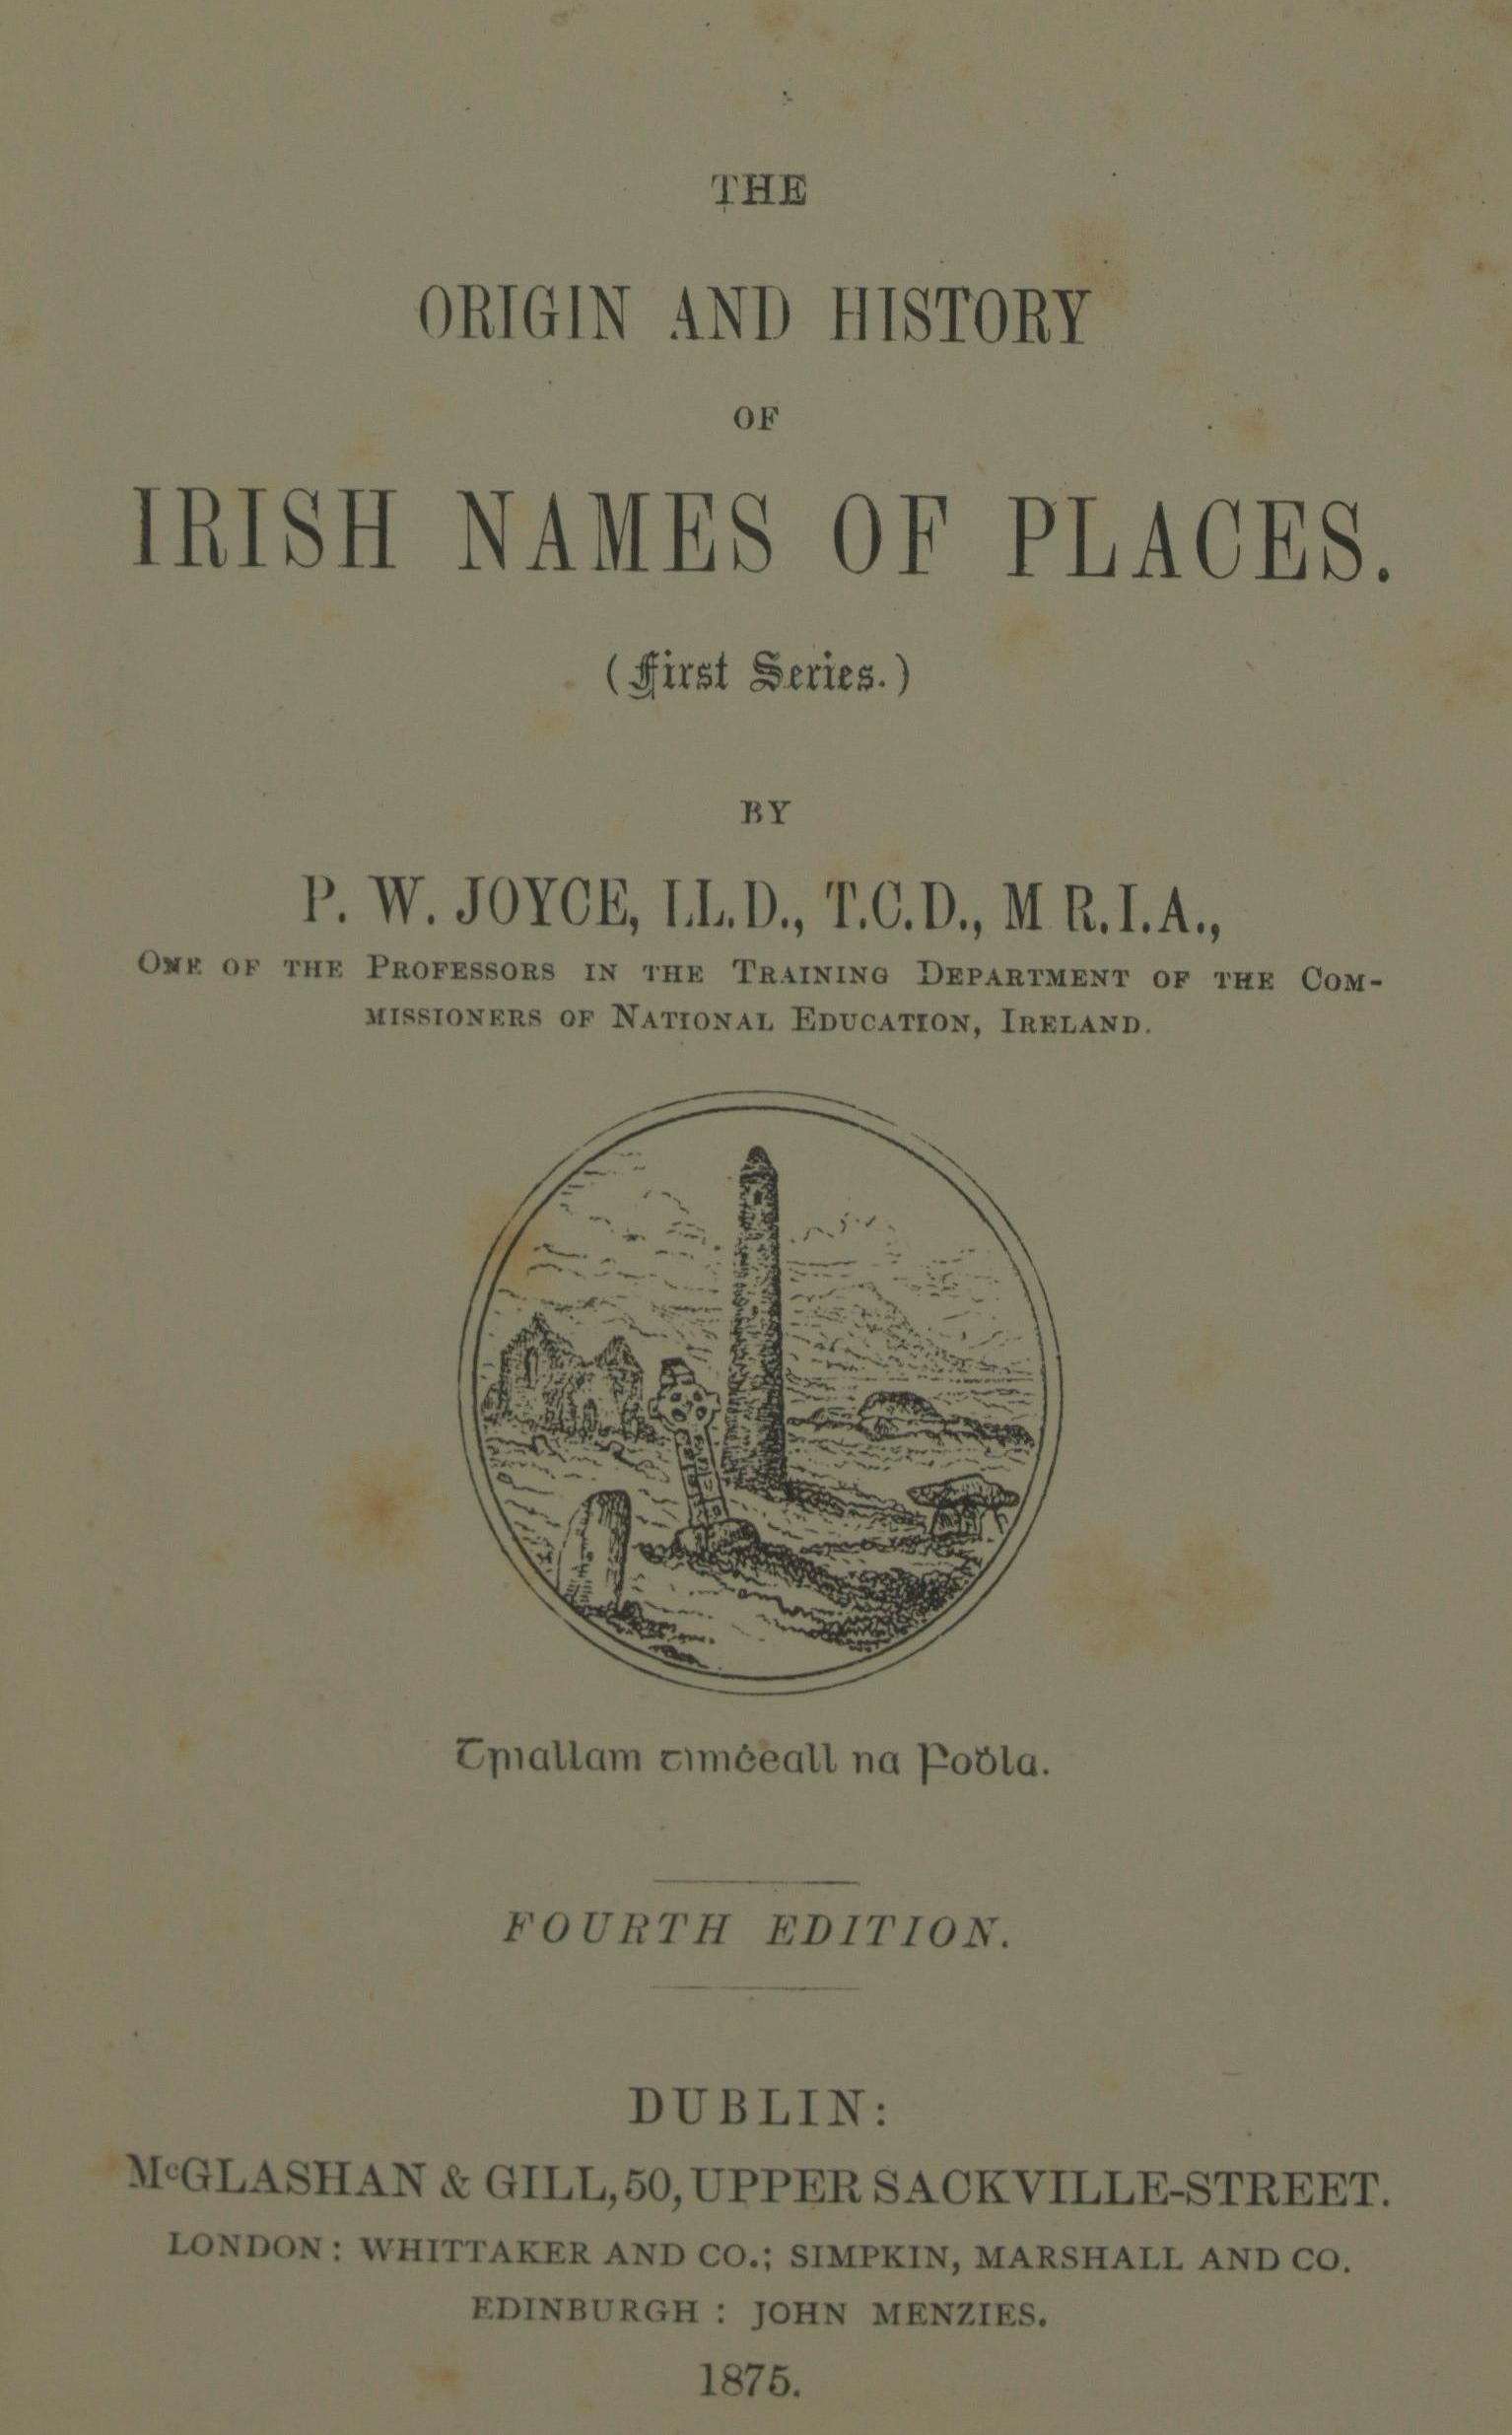 photo of The Origin and History of Irish Names of Places (First Series) 4th Edition, 1875